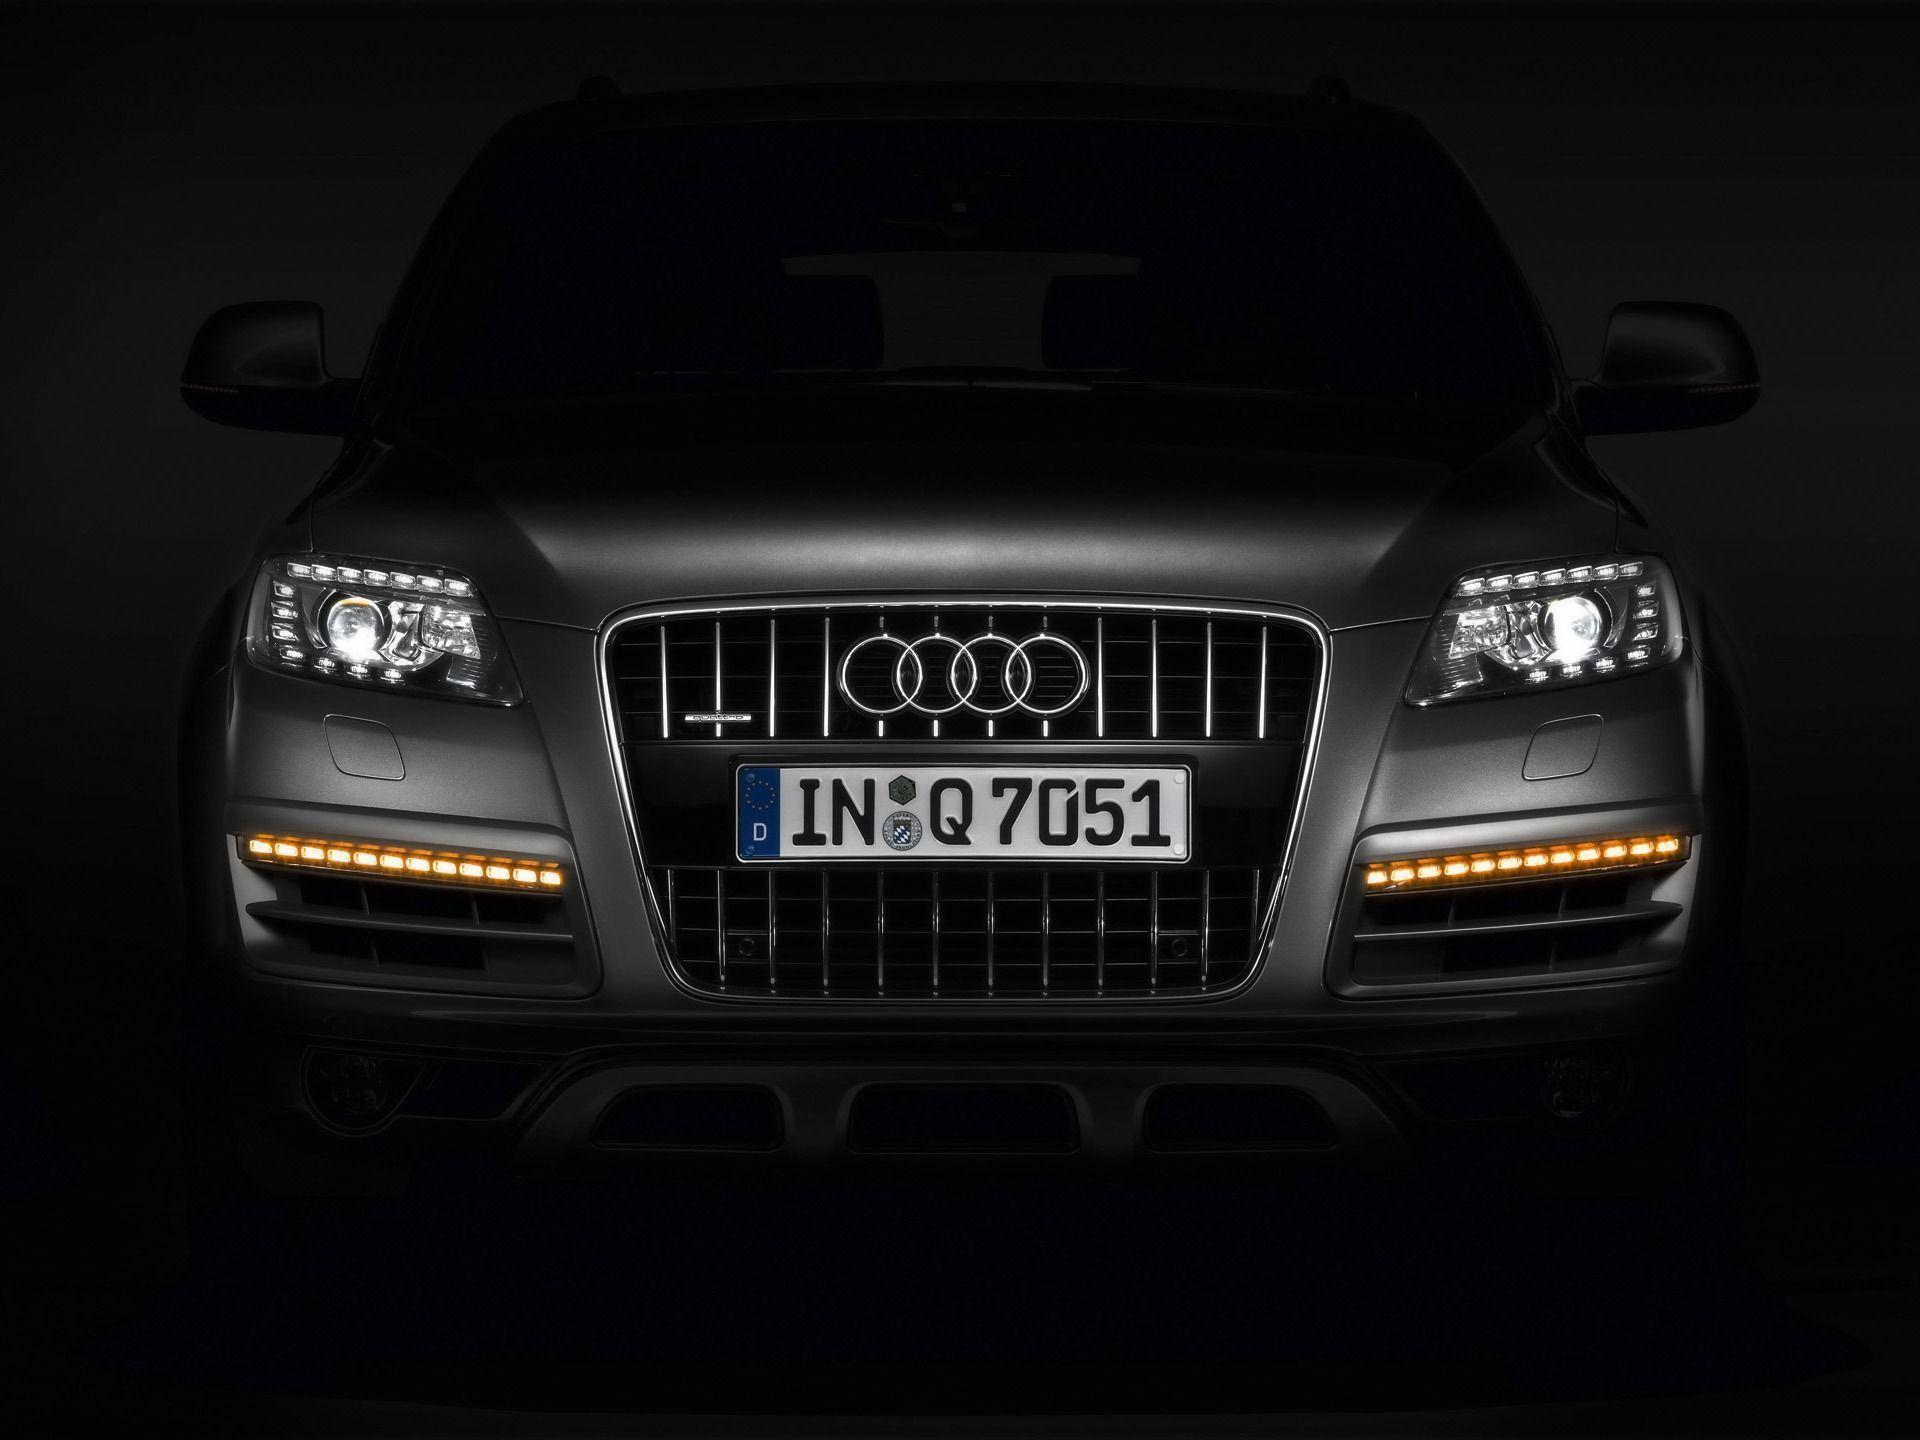 Audi Cars Images Wallpaper Impremedia Net